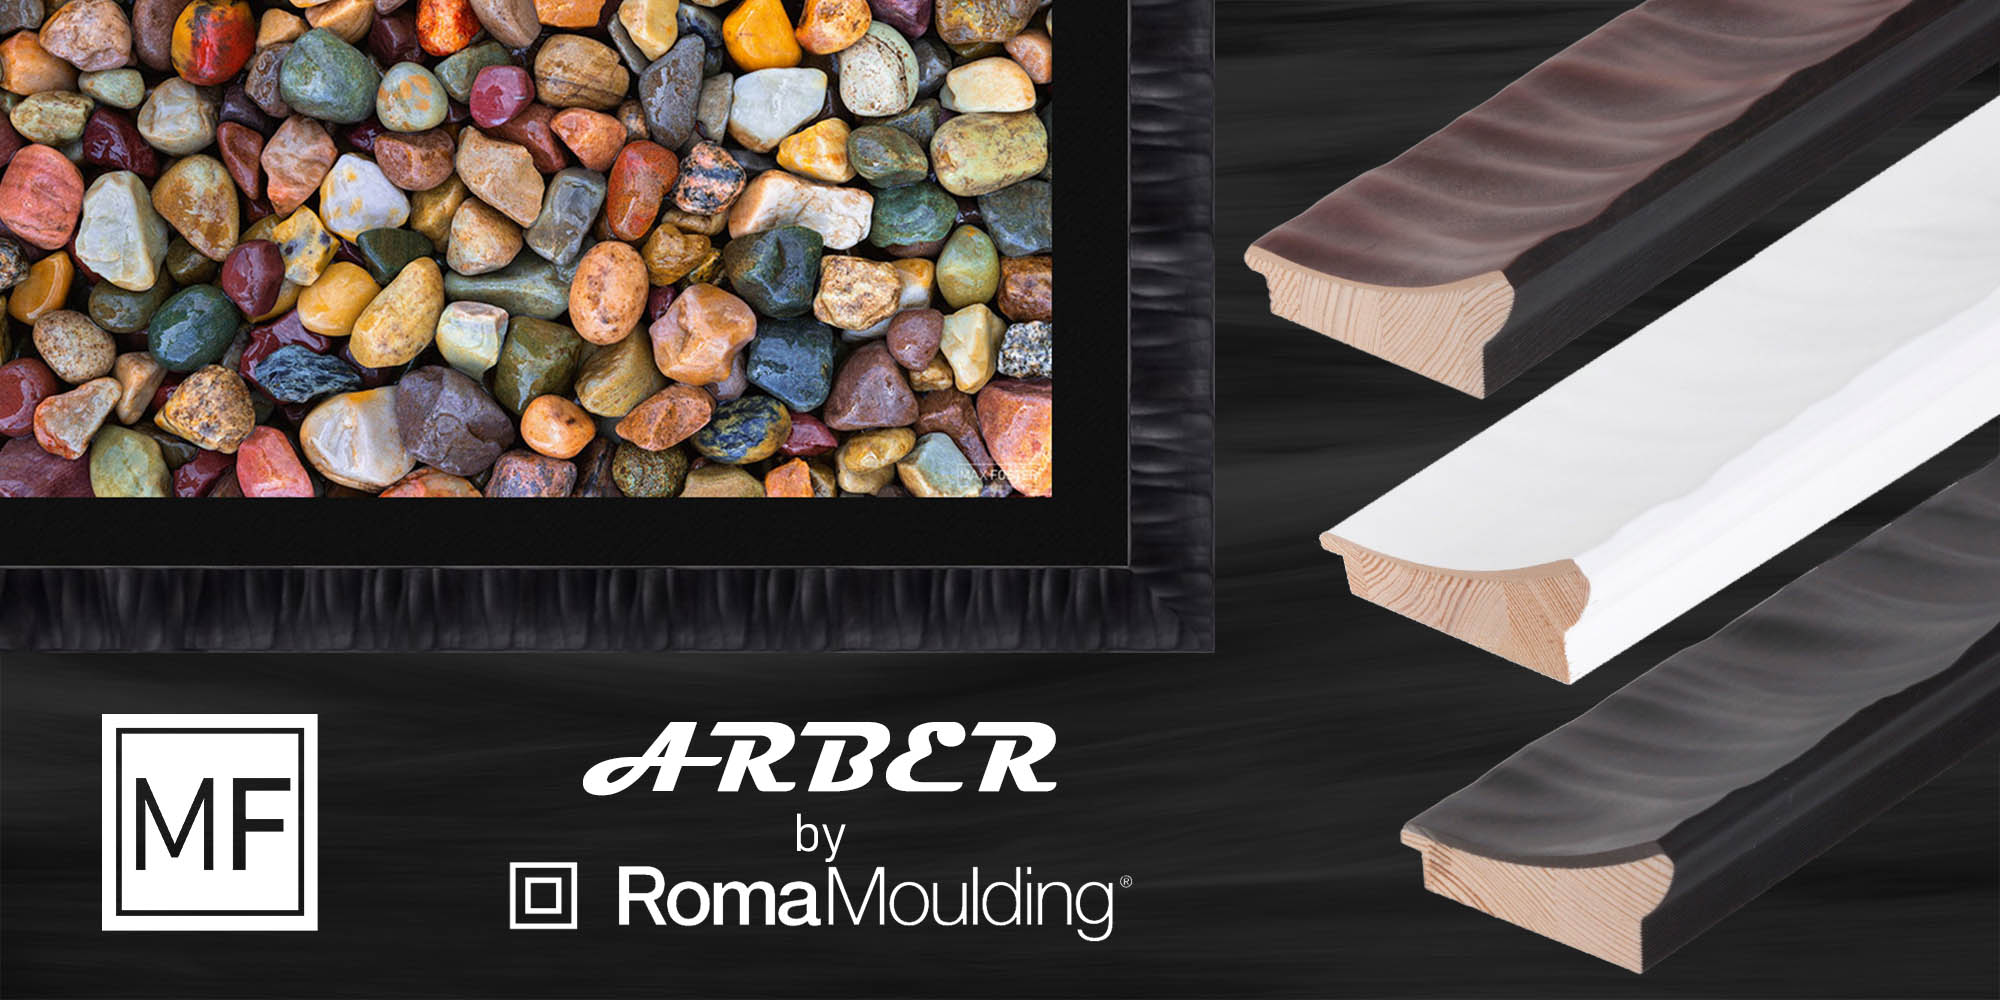 Arber by Roma Moulding